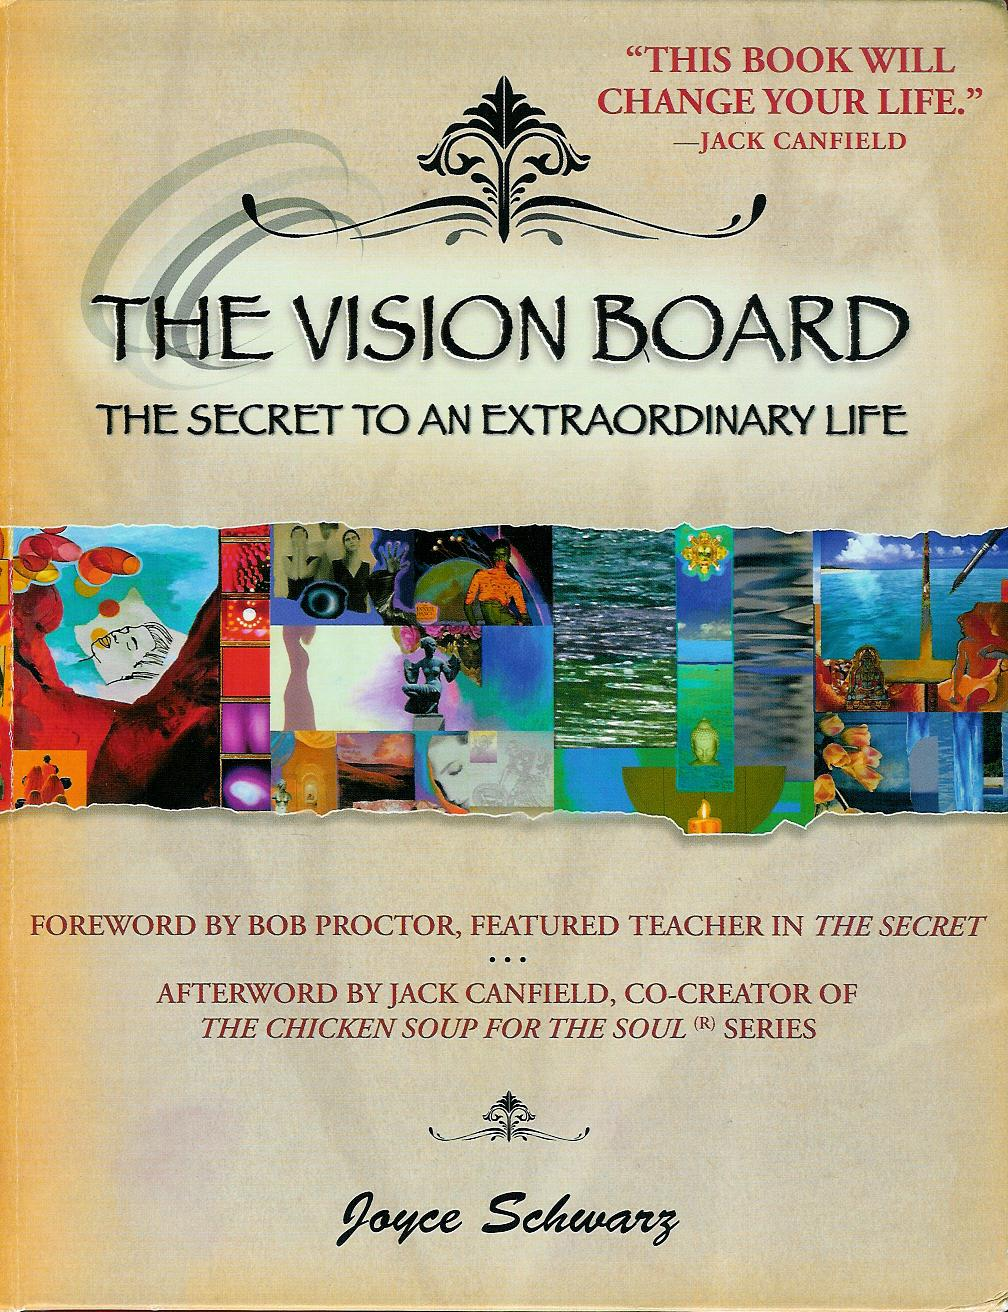 THE VISION BOARD by Joyce Schwarz